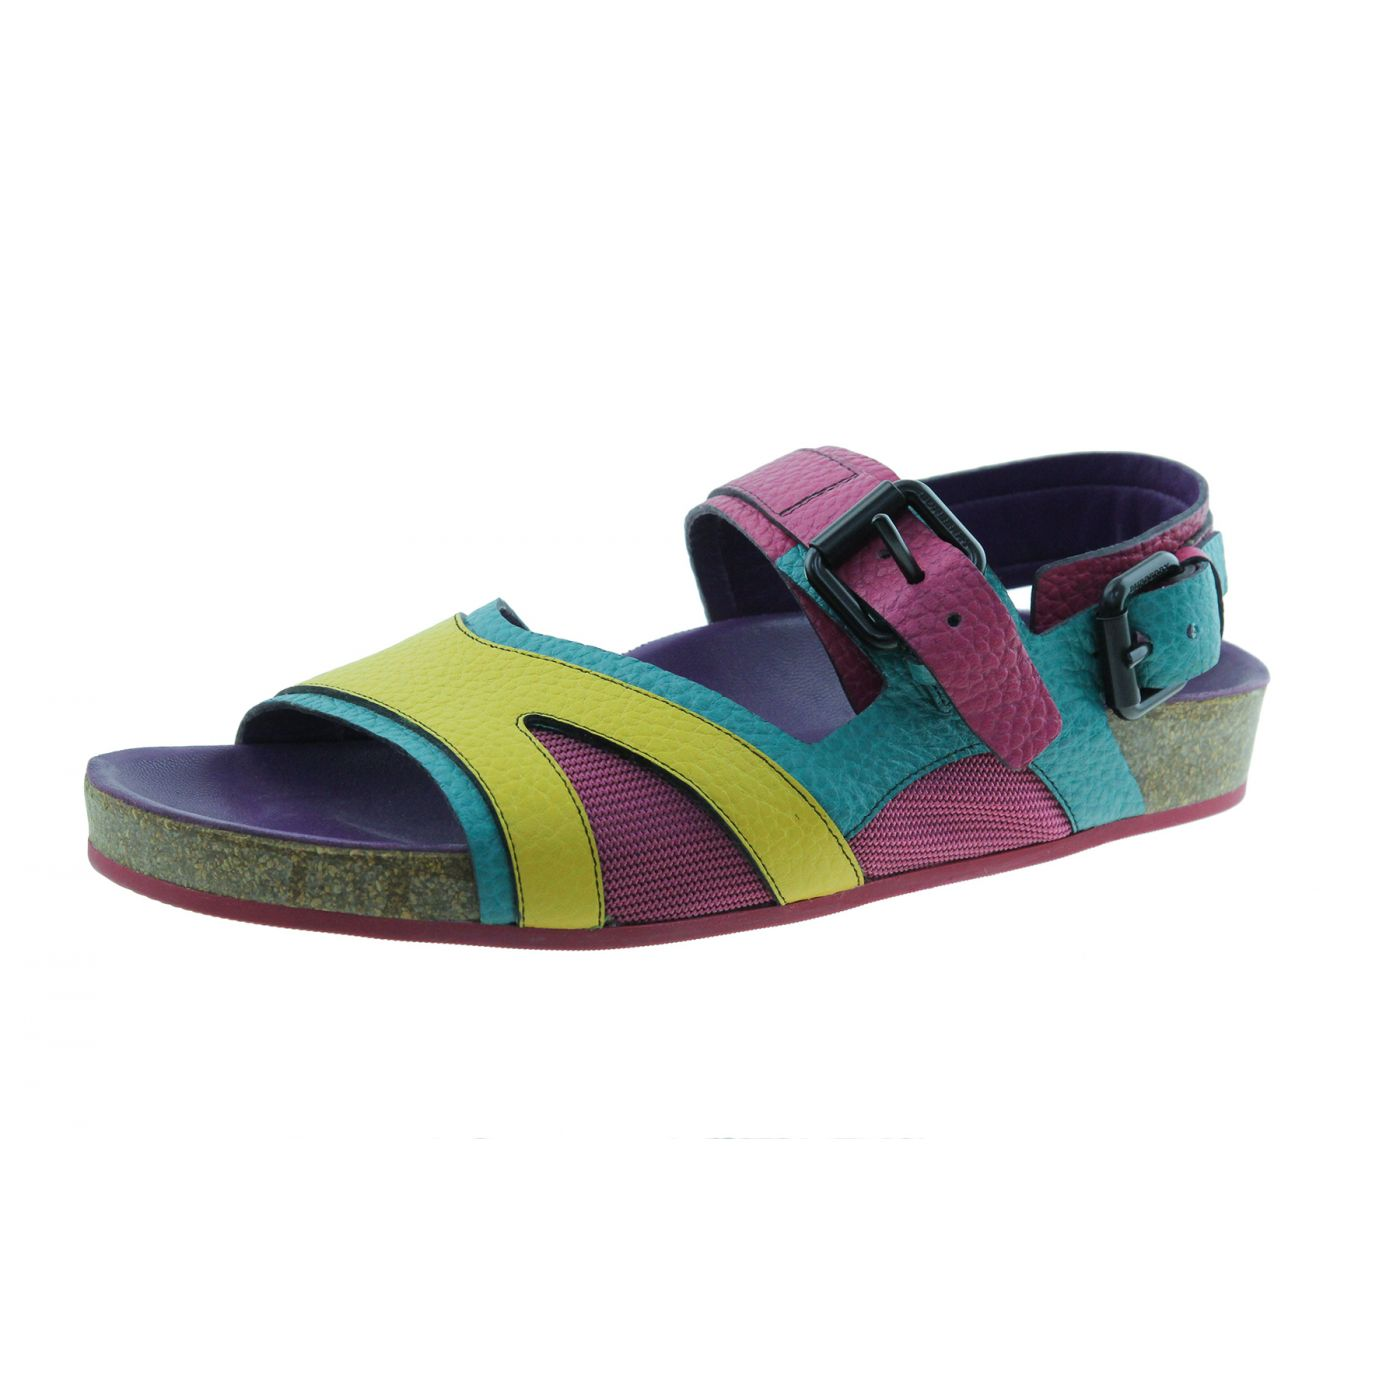 Burberry Multicolor The Field Sandals 37 1/2